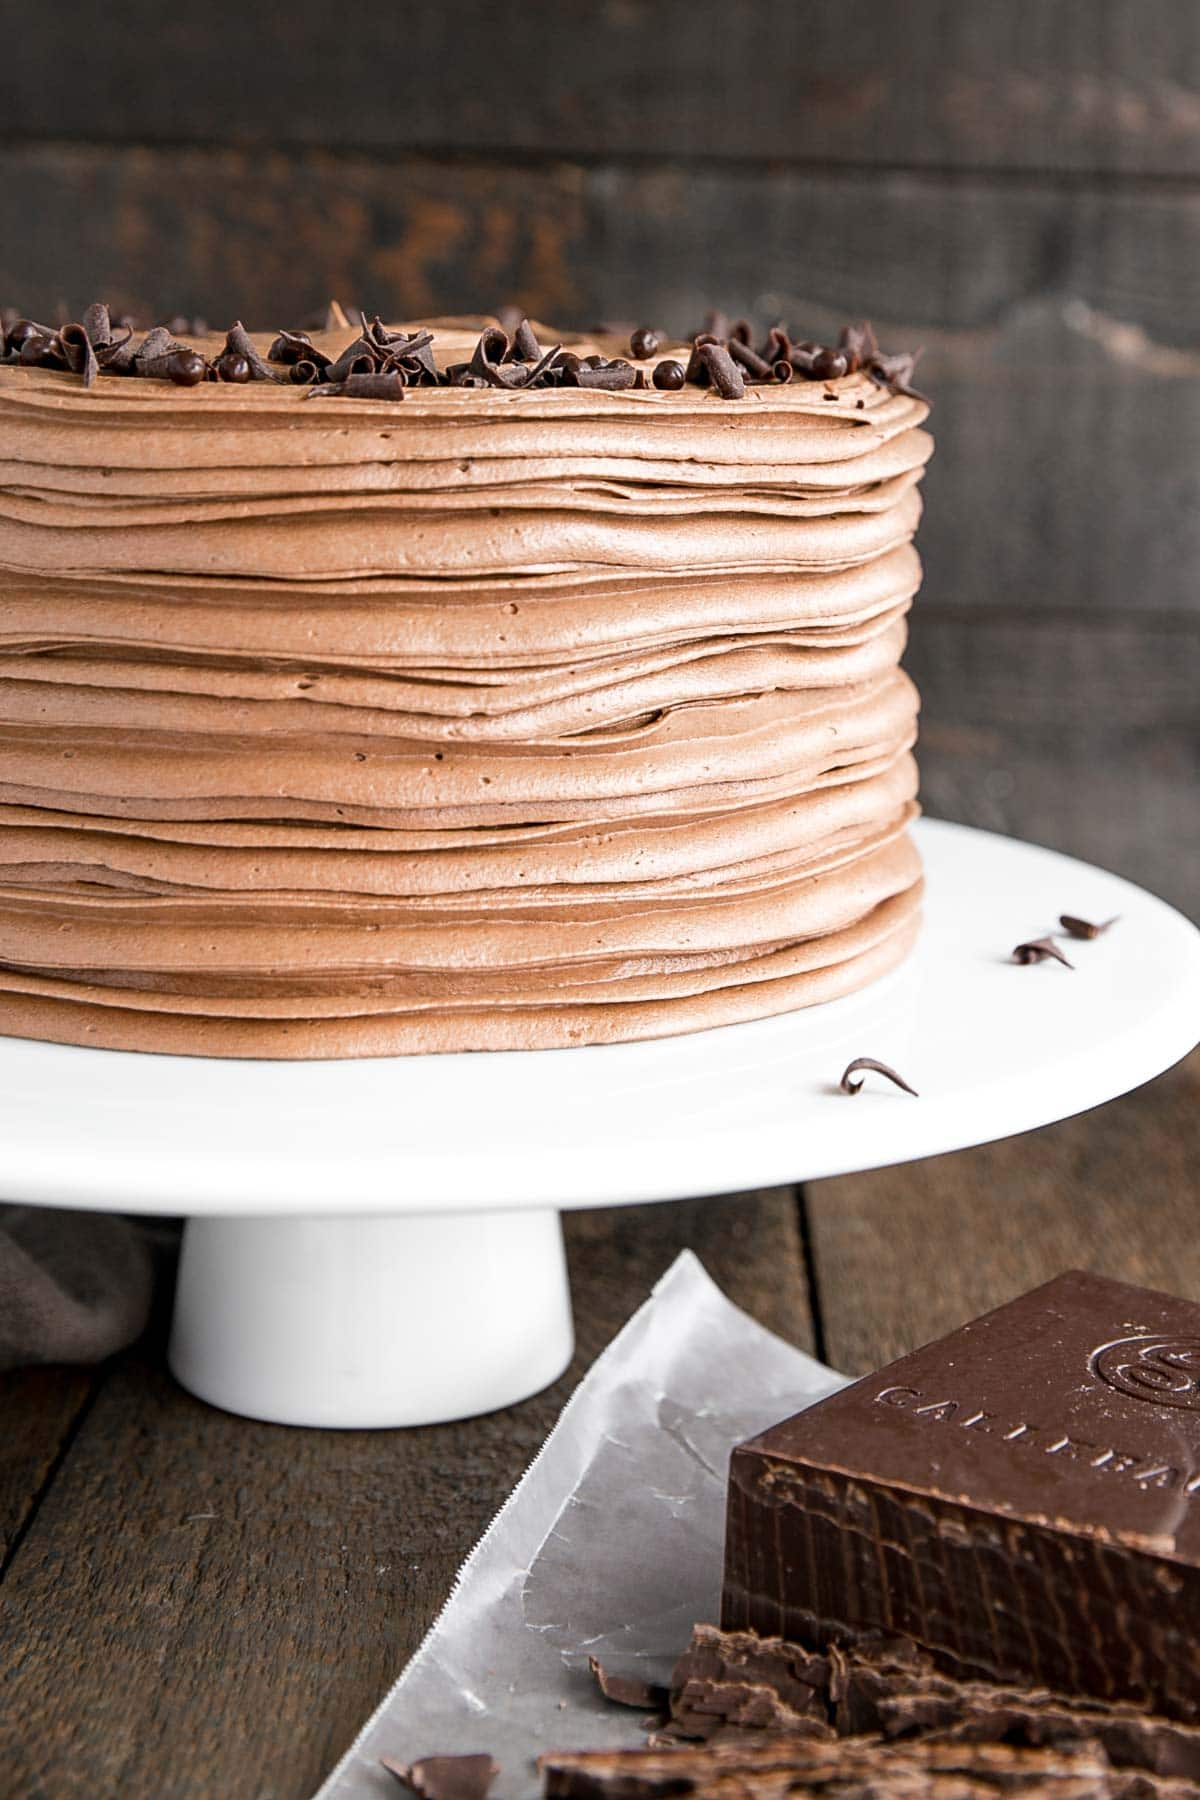 Chocolate cake with chocolate swiss meringue buttercream